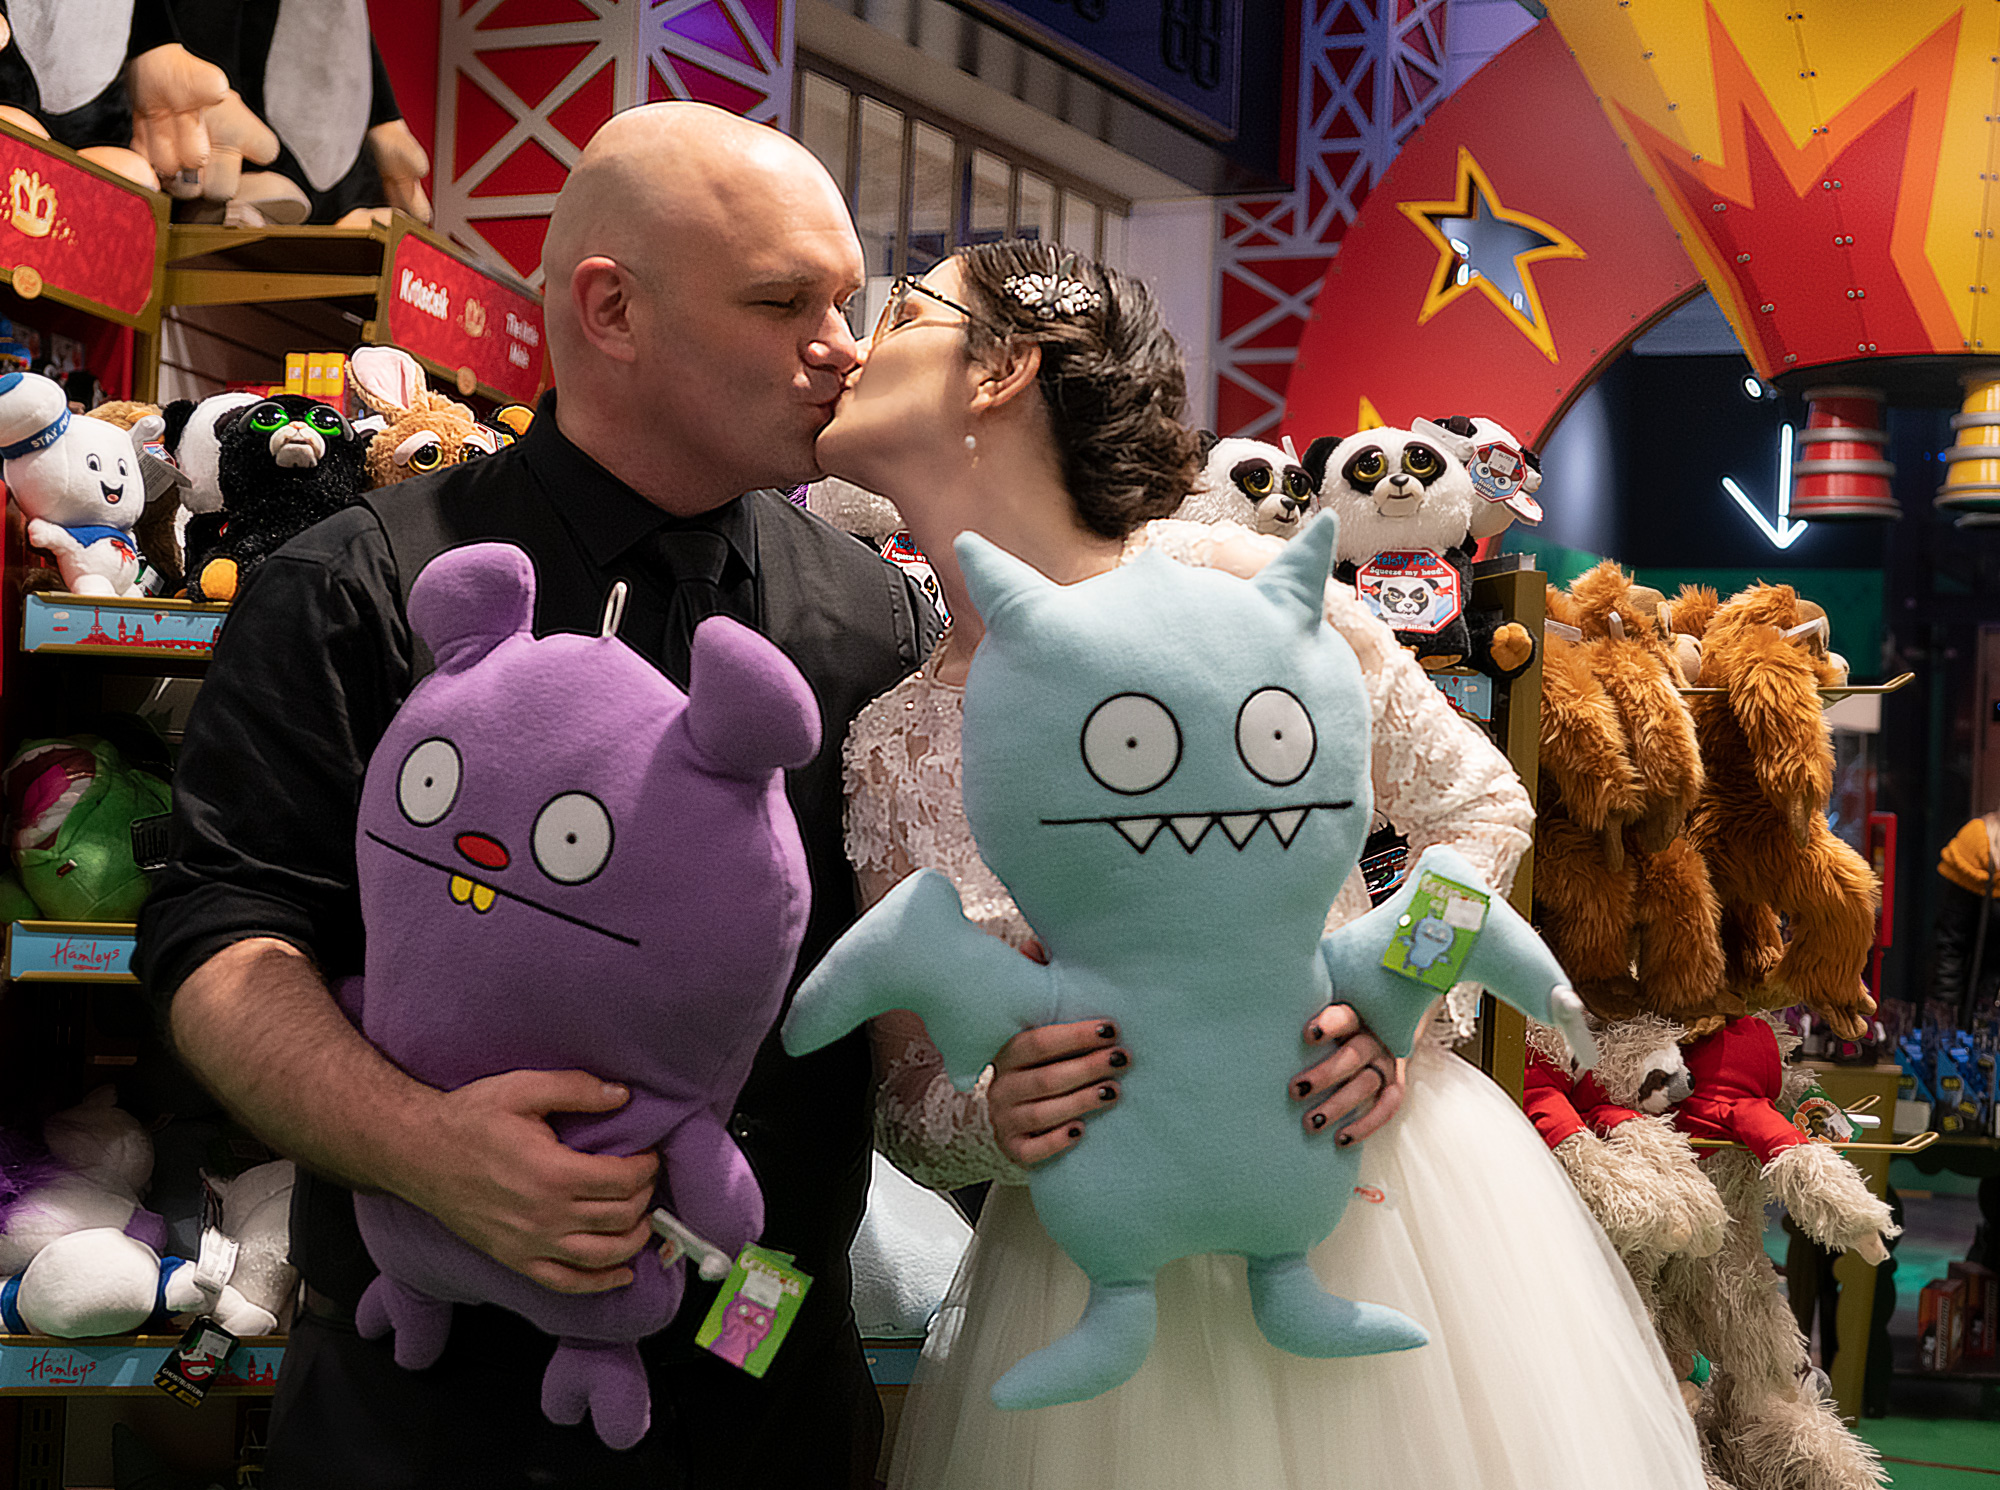 Kiss in a toy store with Uglydolls